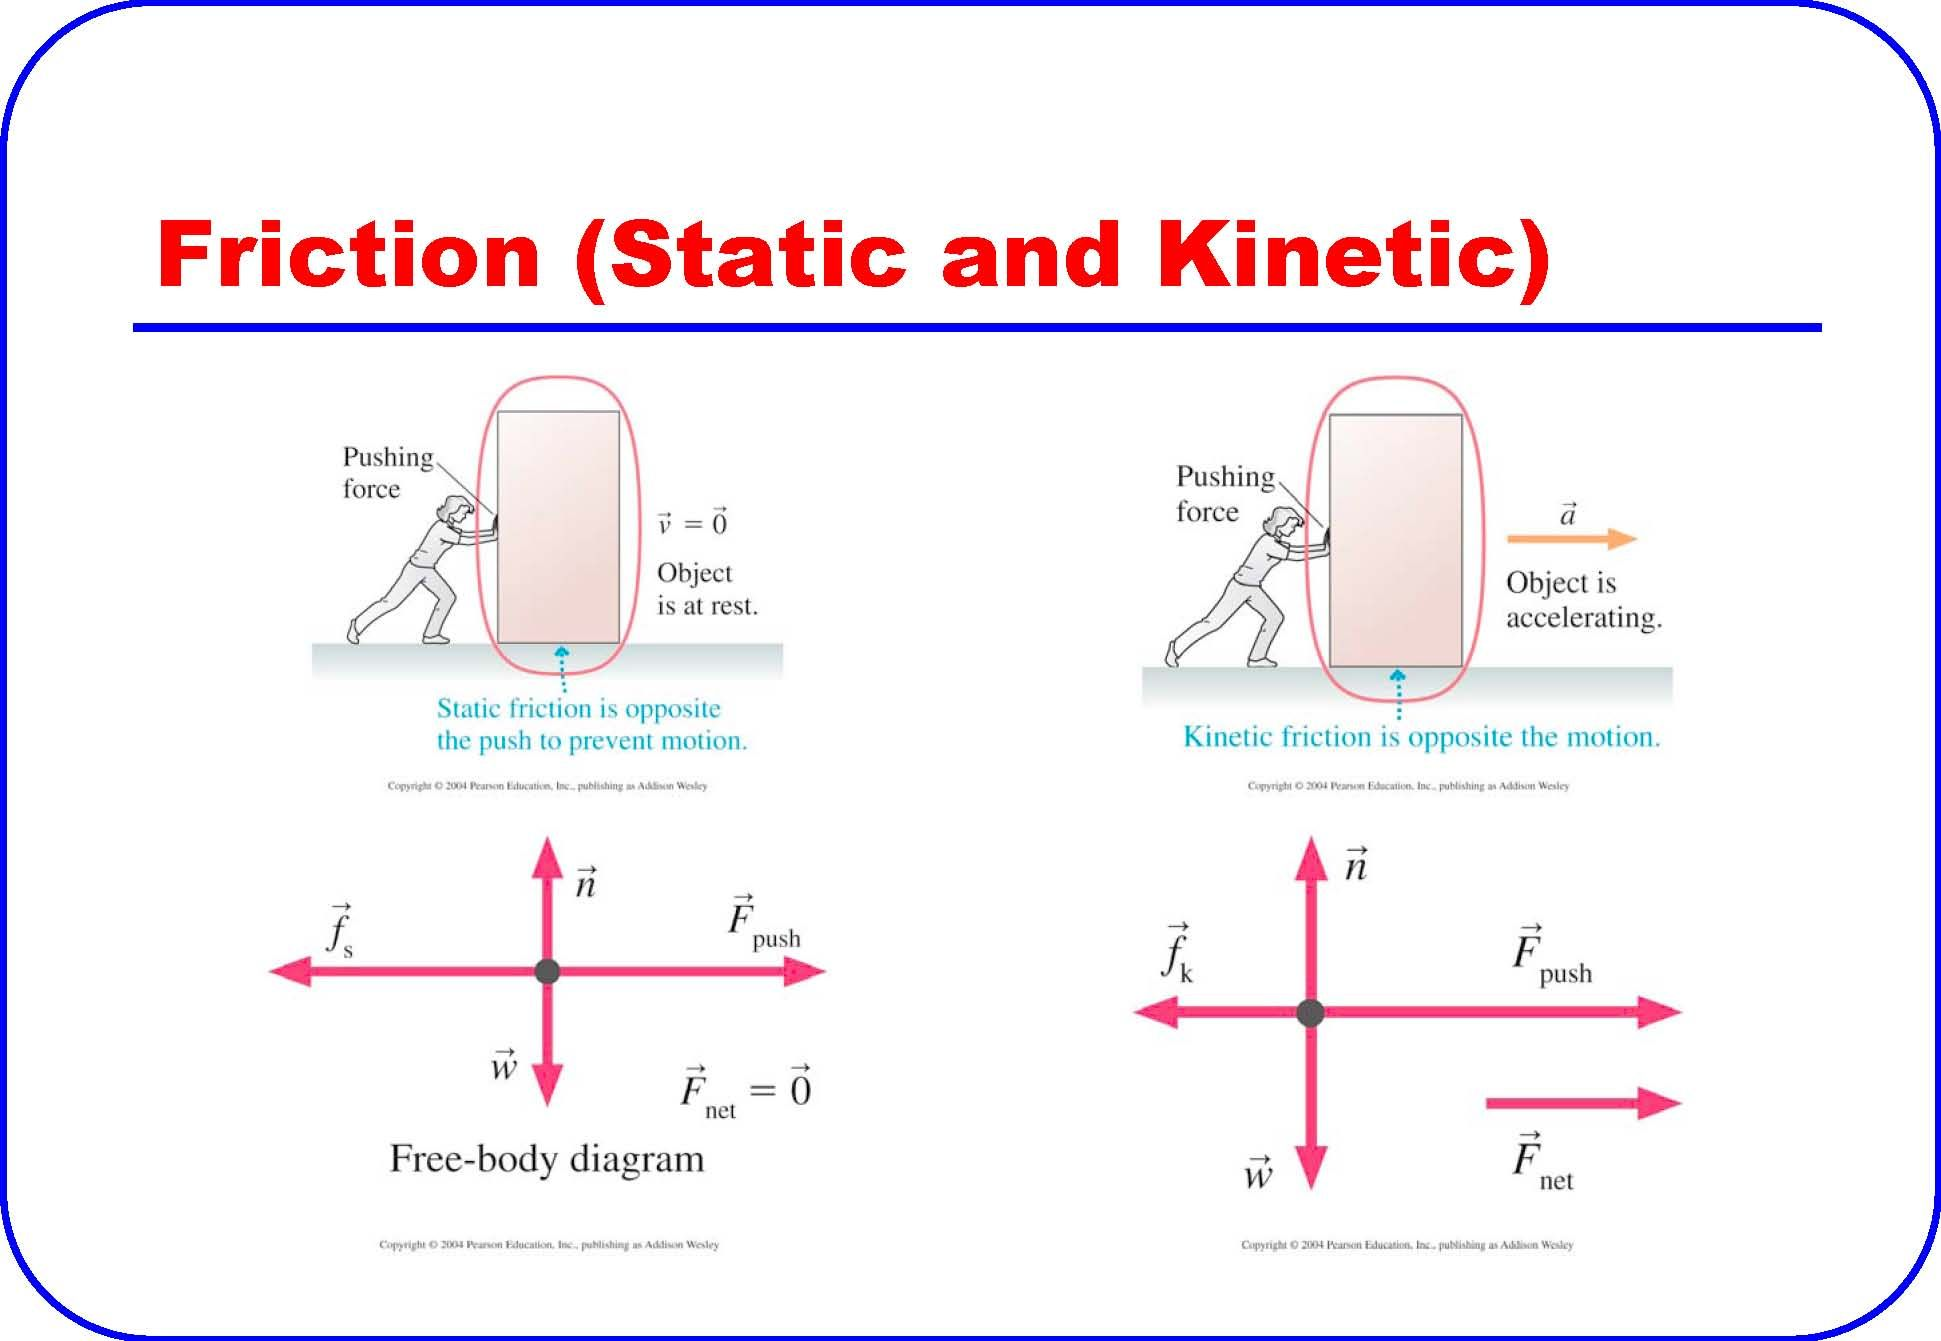 static friction: the left part of the picture is where the object